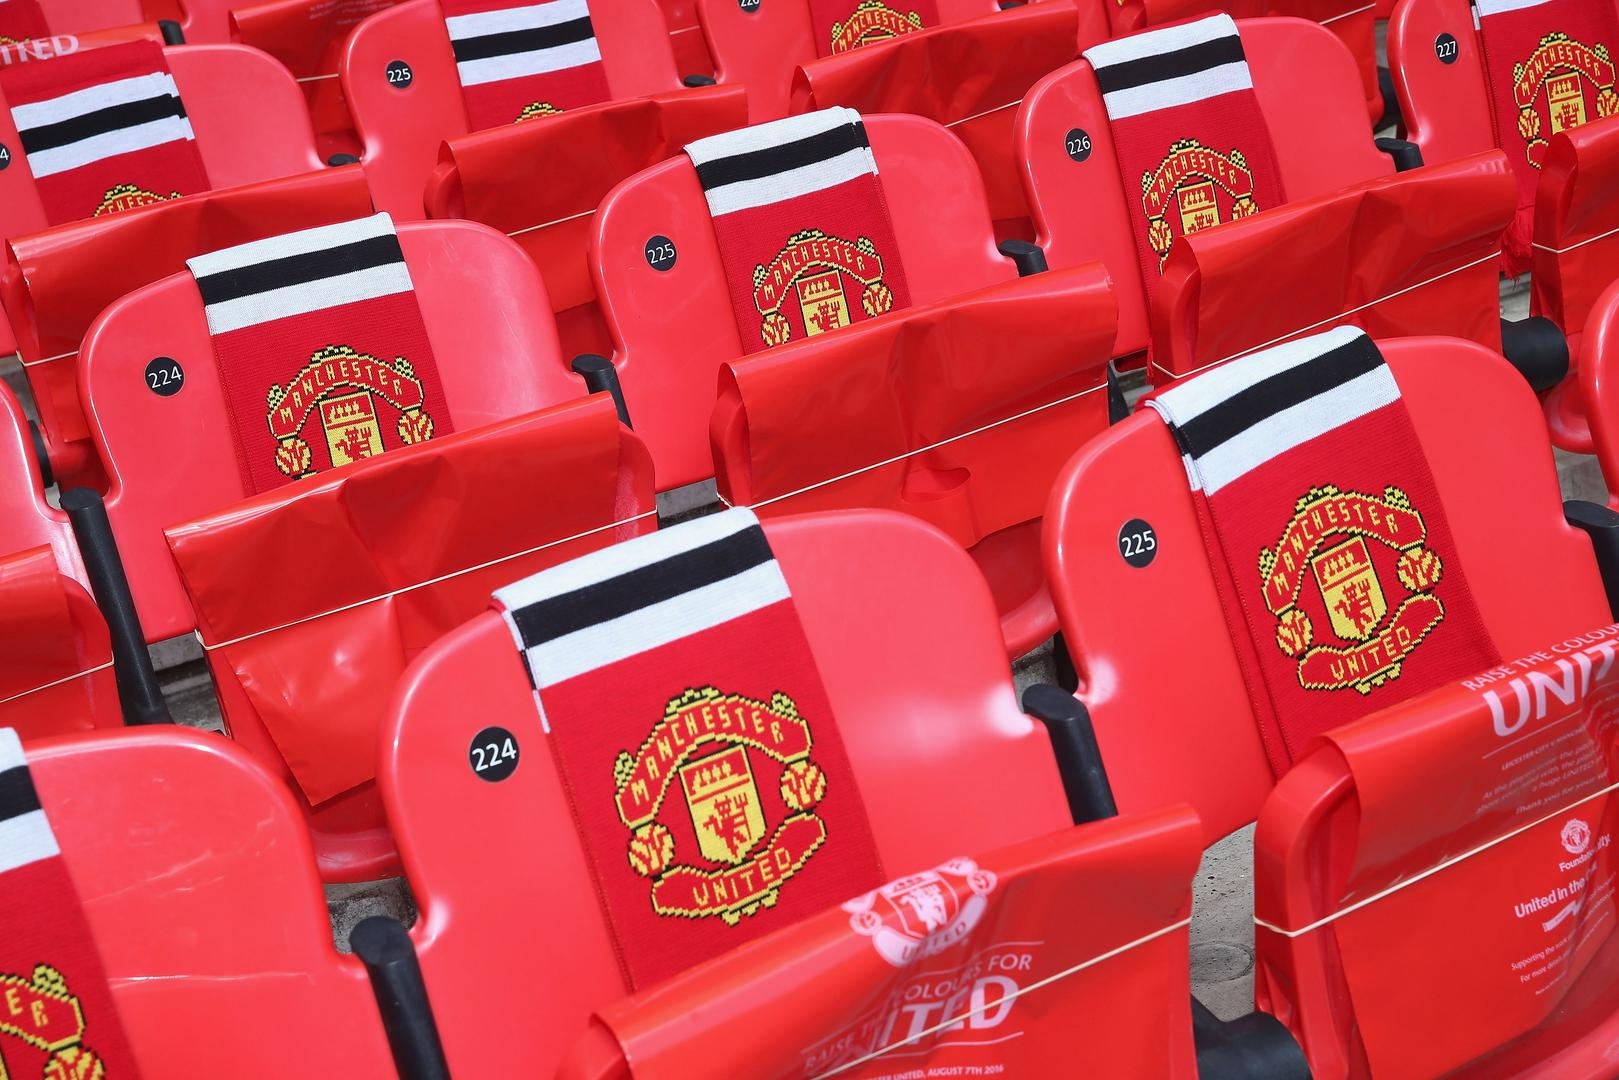 United scarves on seats.